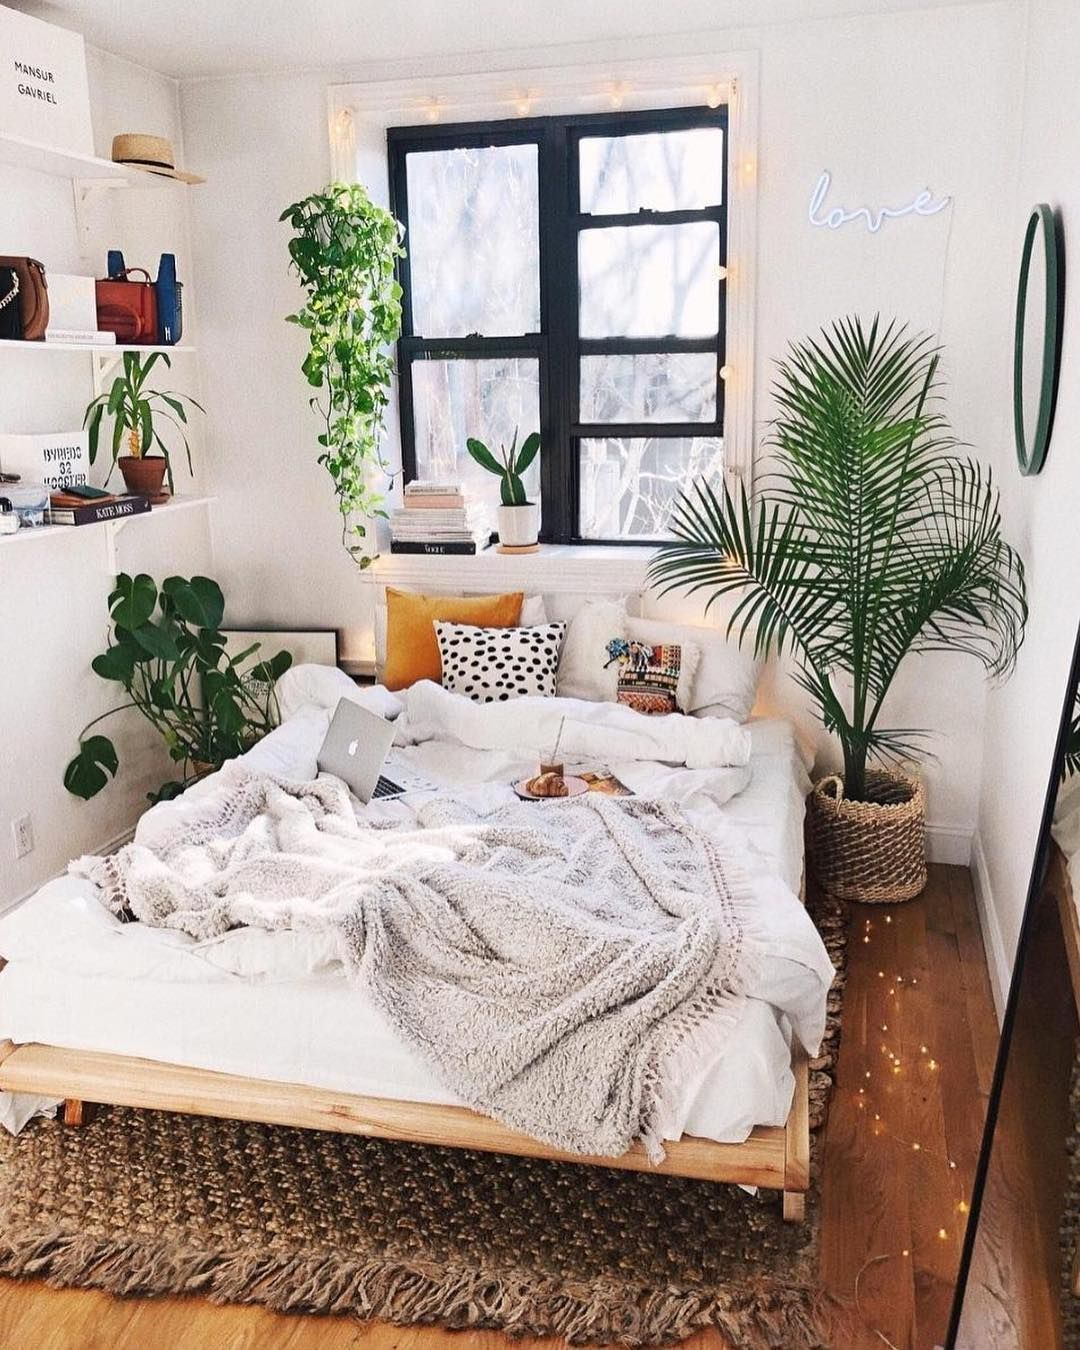 Shop The Look Summer Home Trends Edition Bedroom Decor For